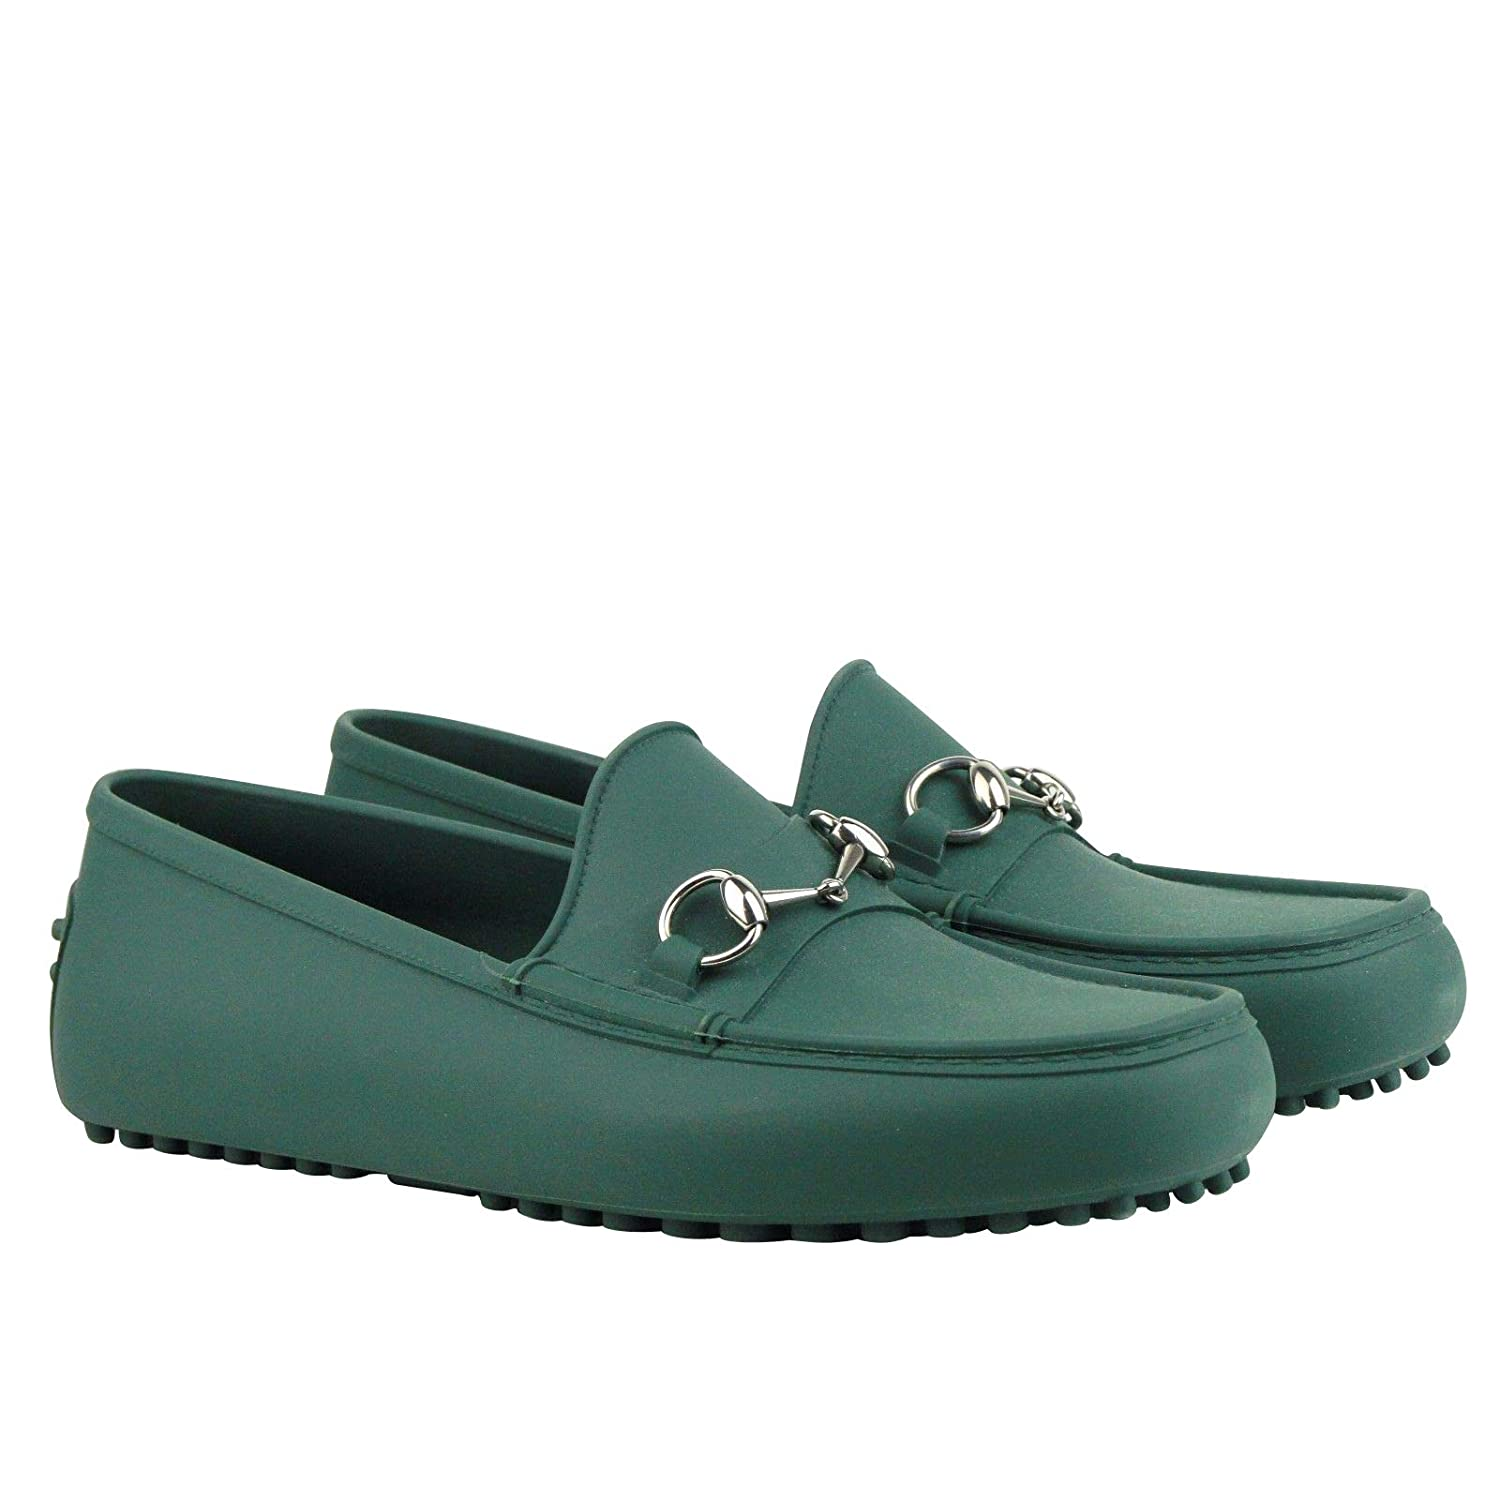 83a745800ca Amazon.com  Gucci Silver Horsebit Green Rubber Loafer Shoes 386586 3020 (11  G   11.5 US)  Shoes